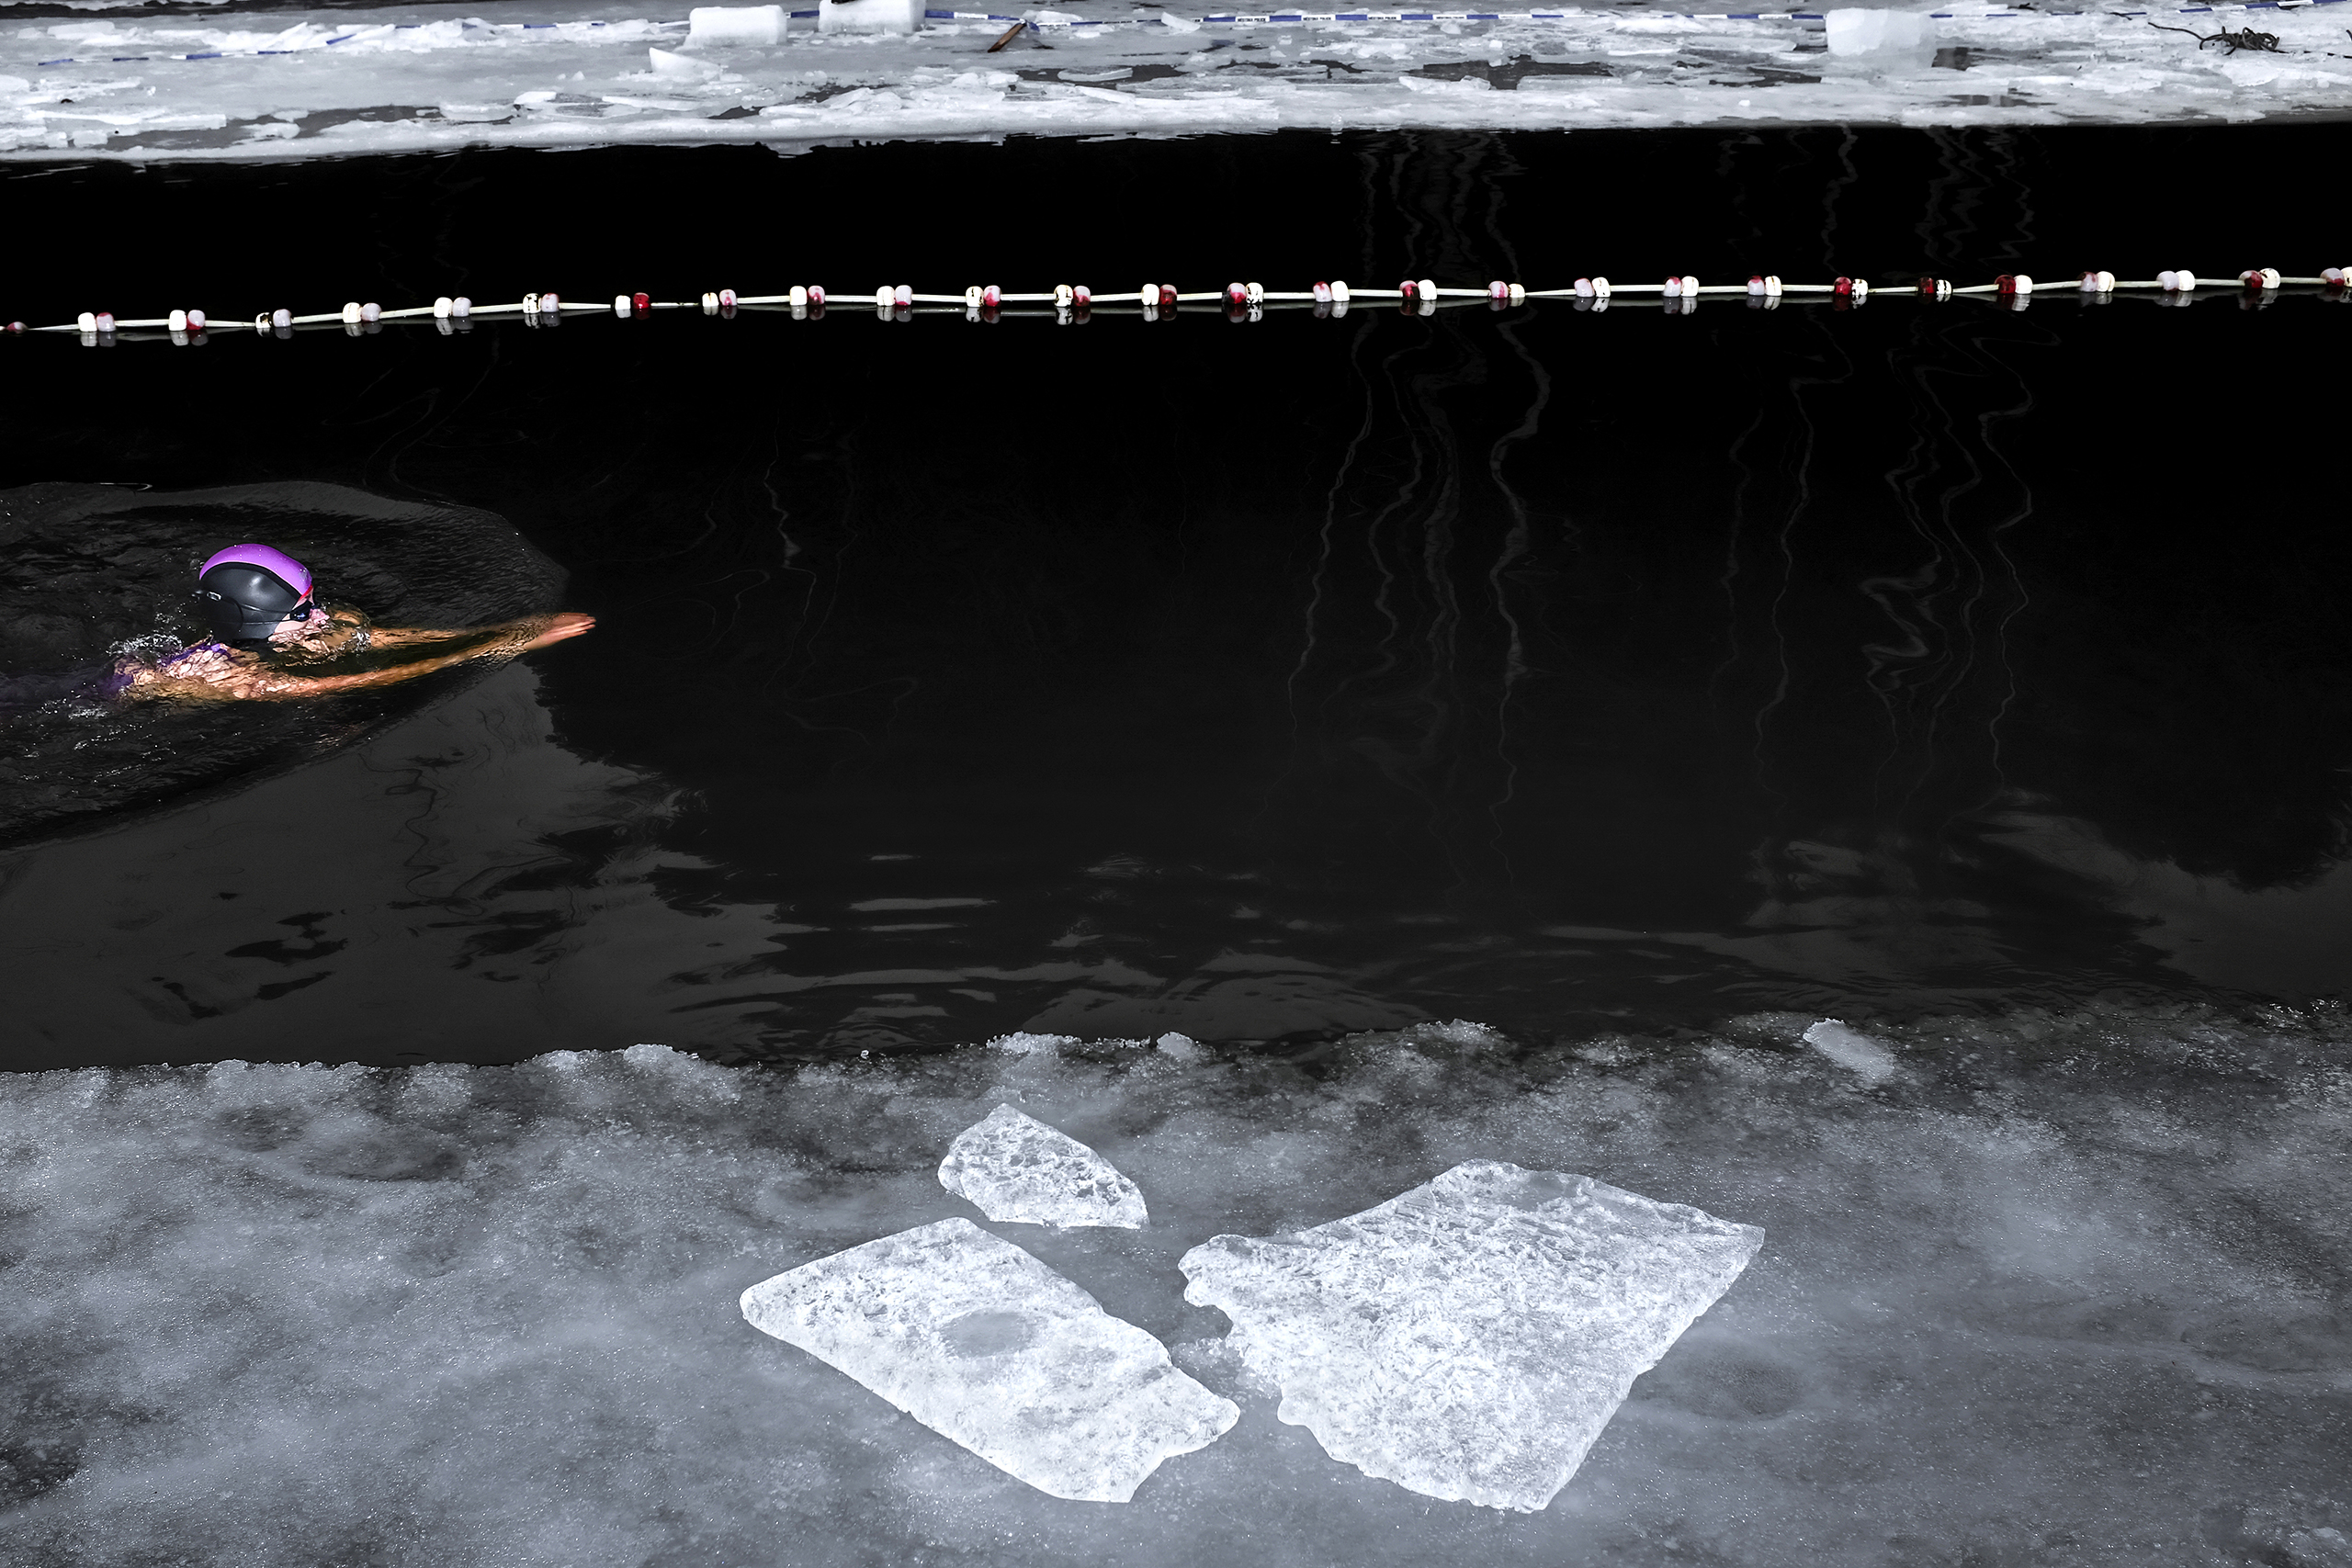 A small pool was cut into 20cm of ice in Sázava, in the Czech Republic, on Feb. 18 2017.